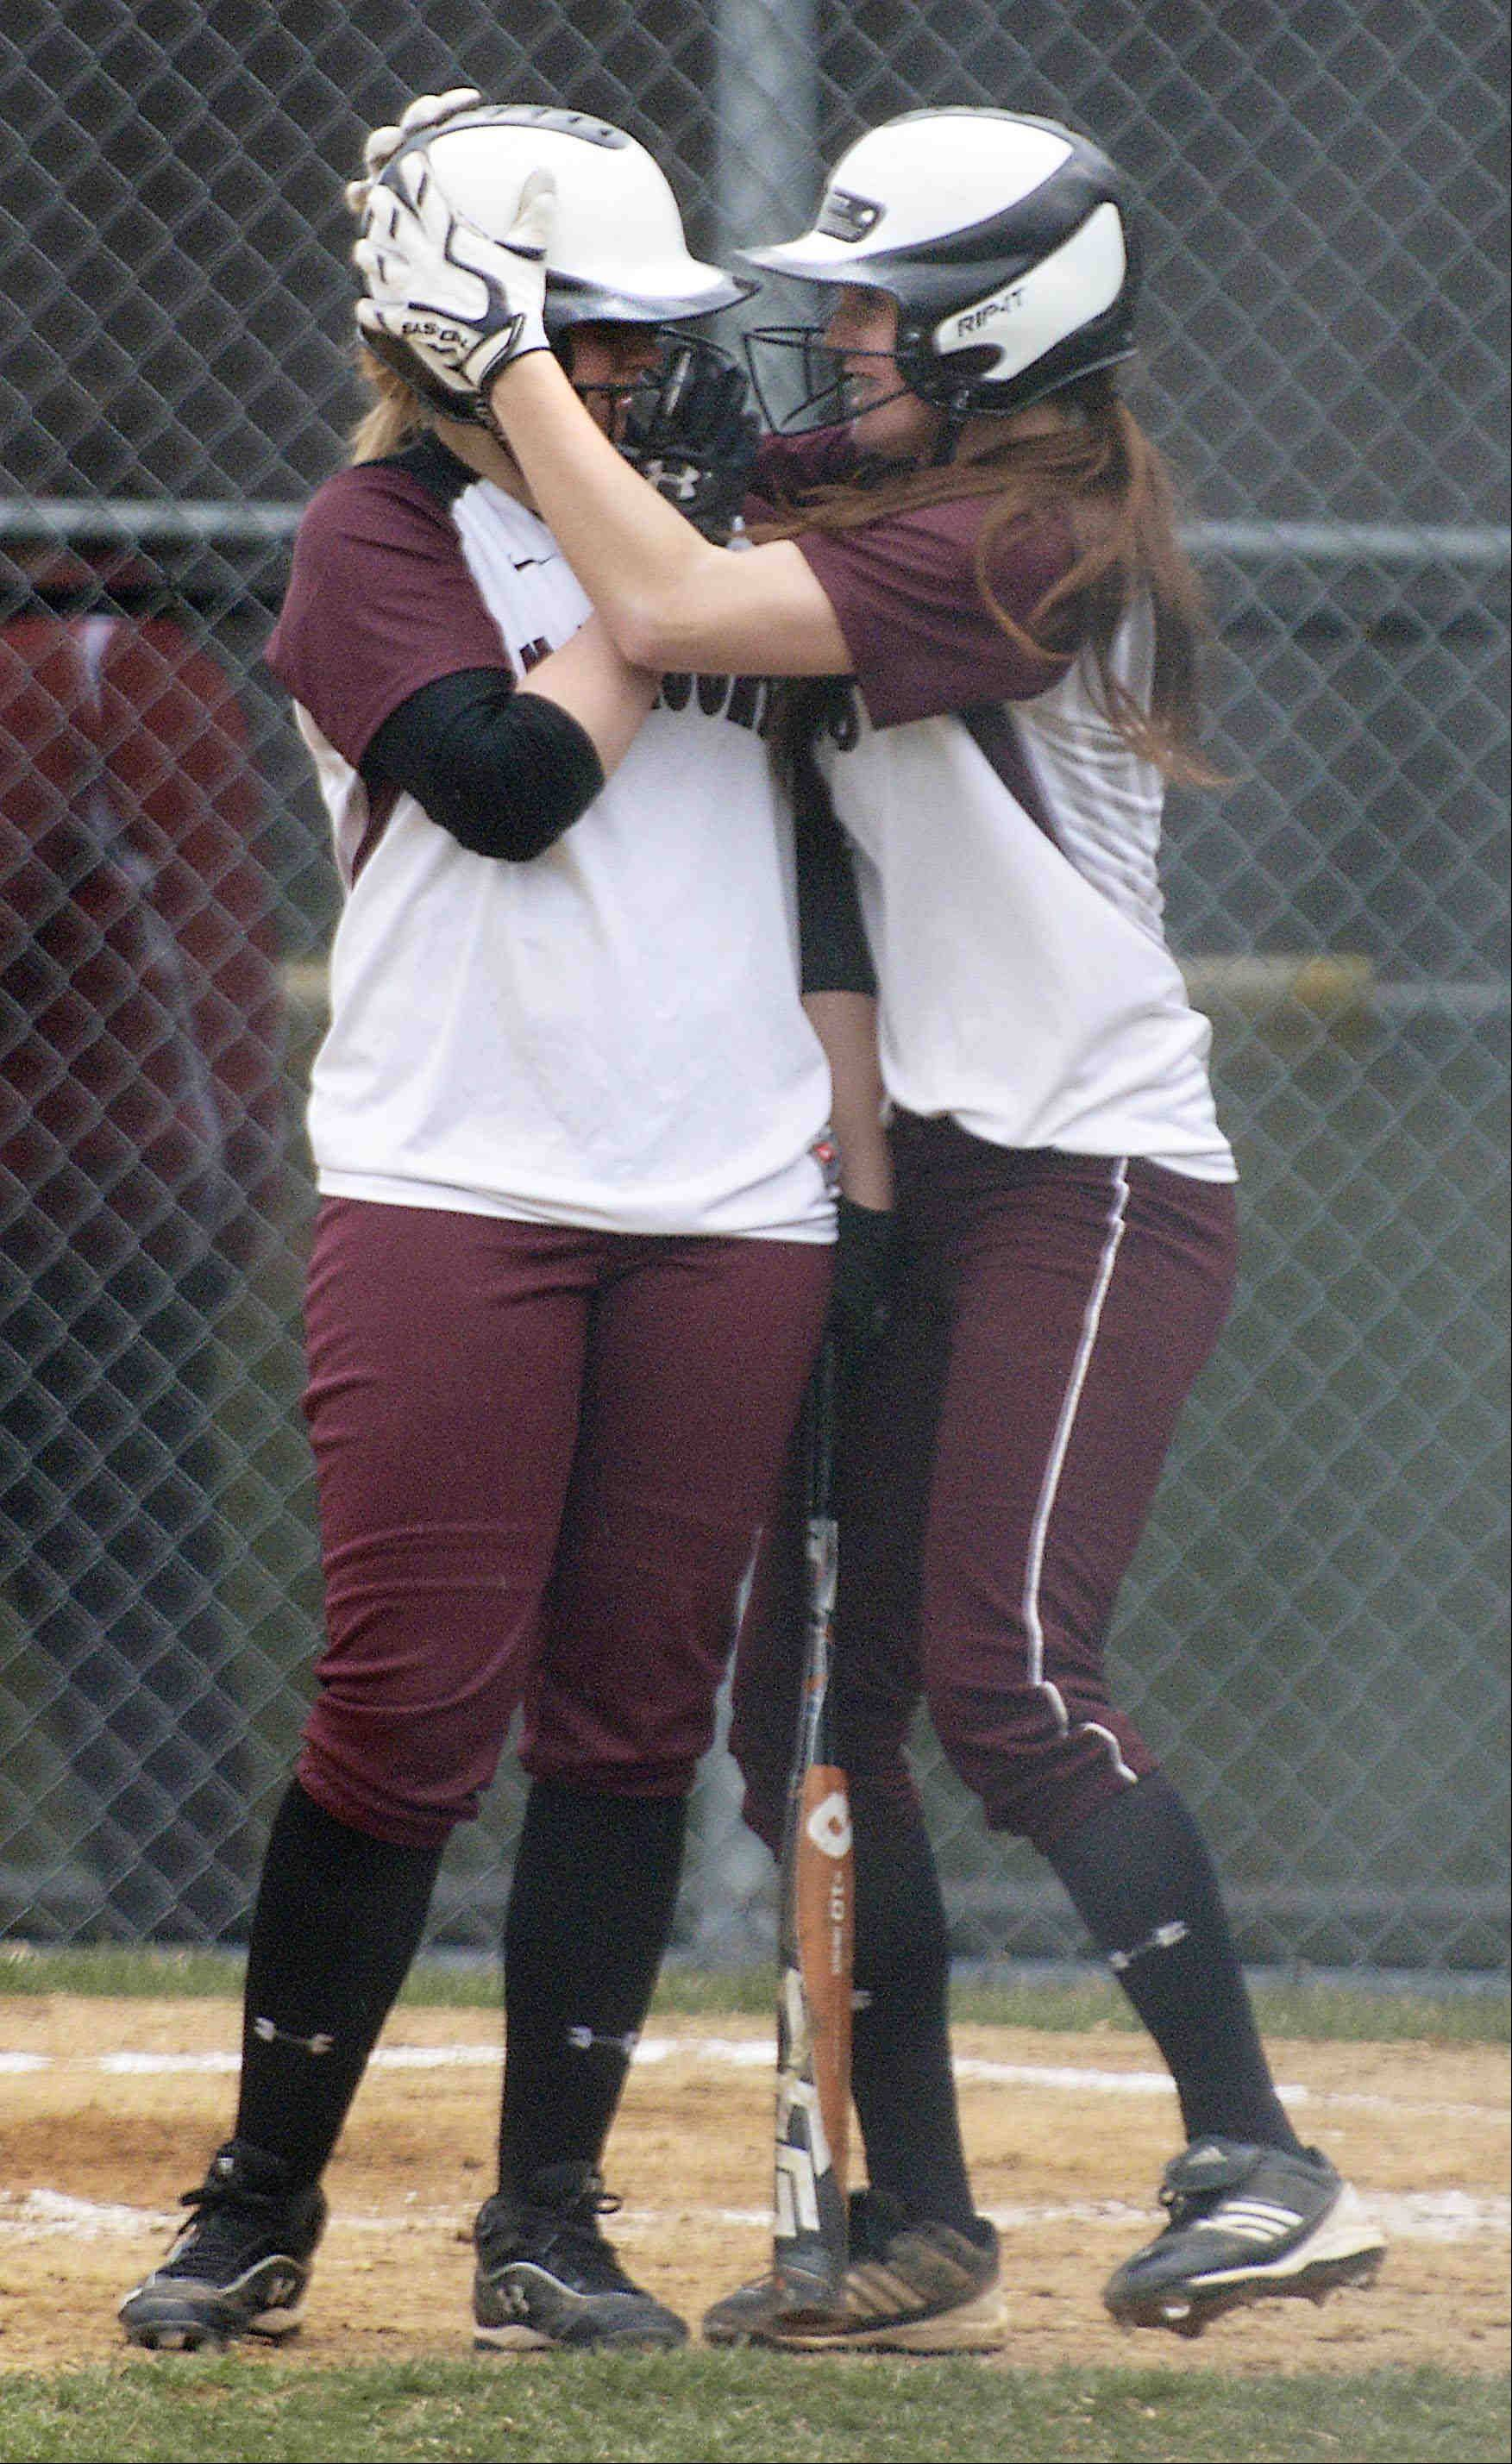 Elgin's Jennah Perryman encourages teammate Anna Eckholm before her at bat against Bartlett Tuesday in Elgin.